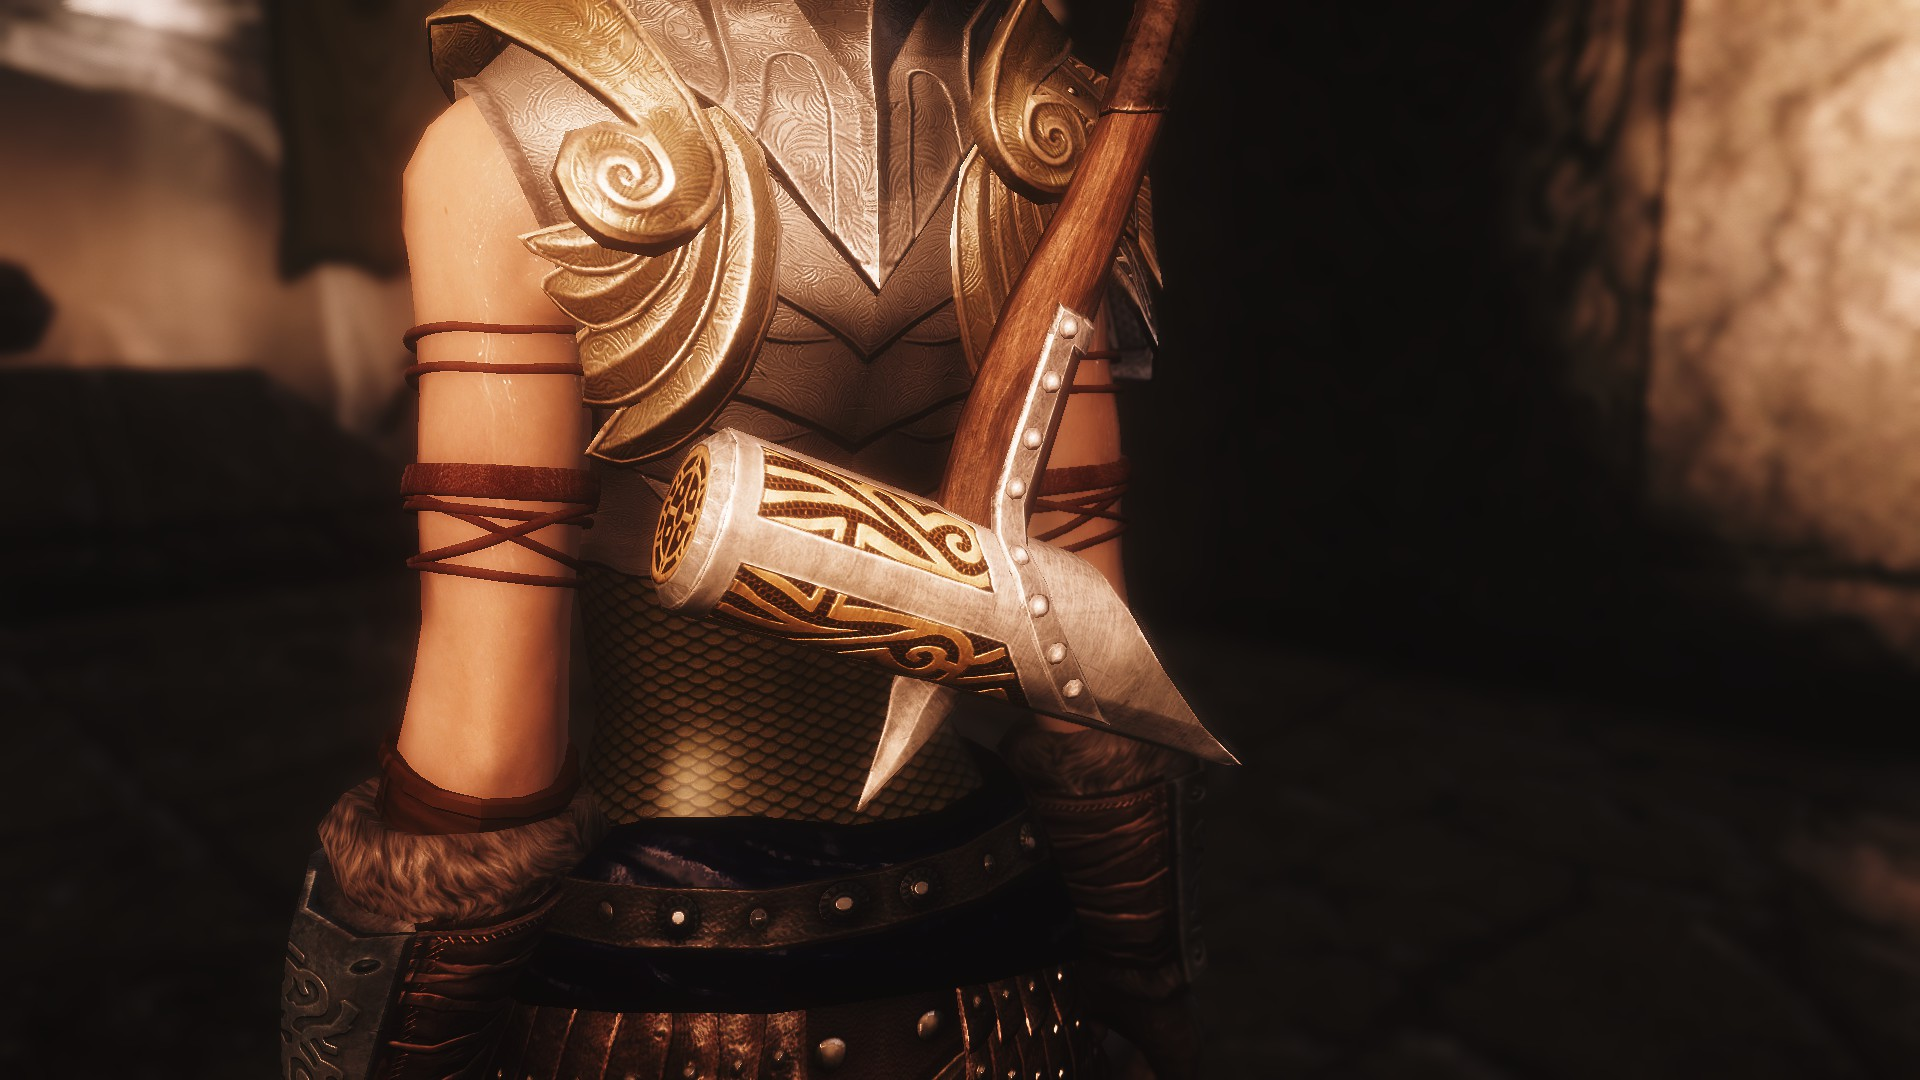 dawnguard armor texture at skyrim nexus mods and eotw the dawnguard textures re mastered at skyrim nexus 991